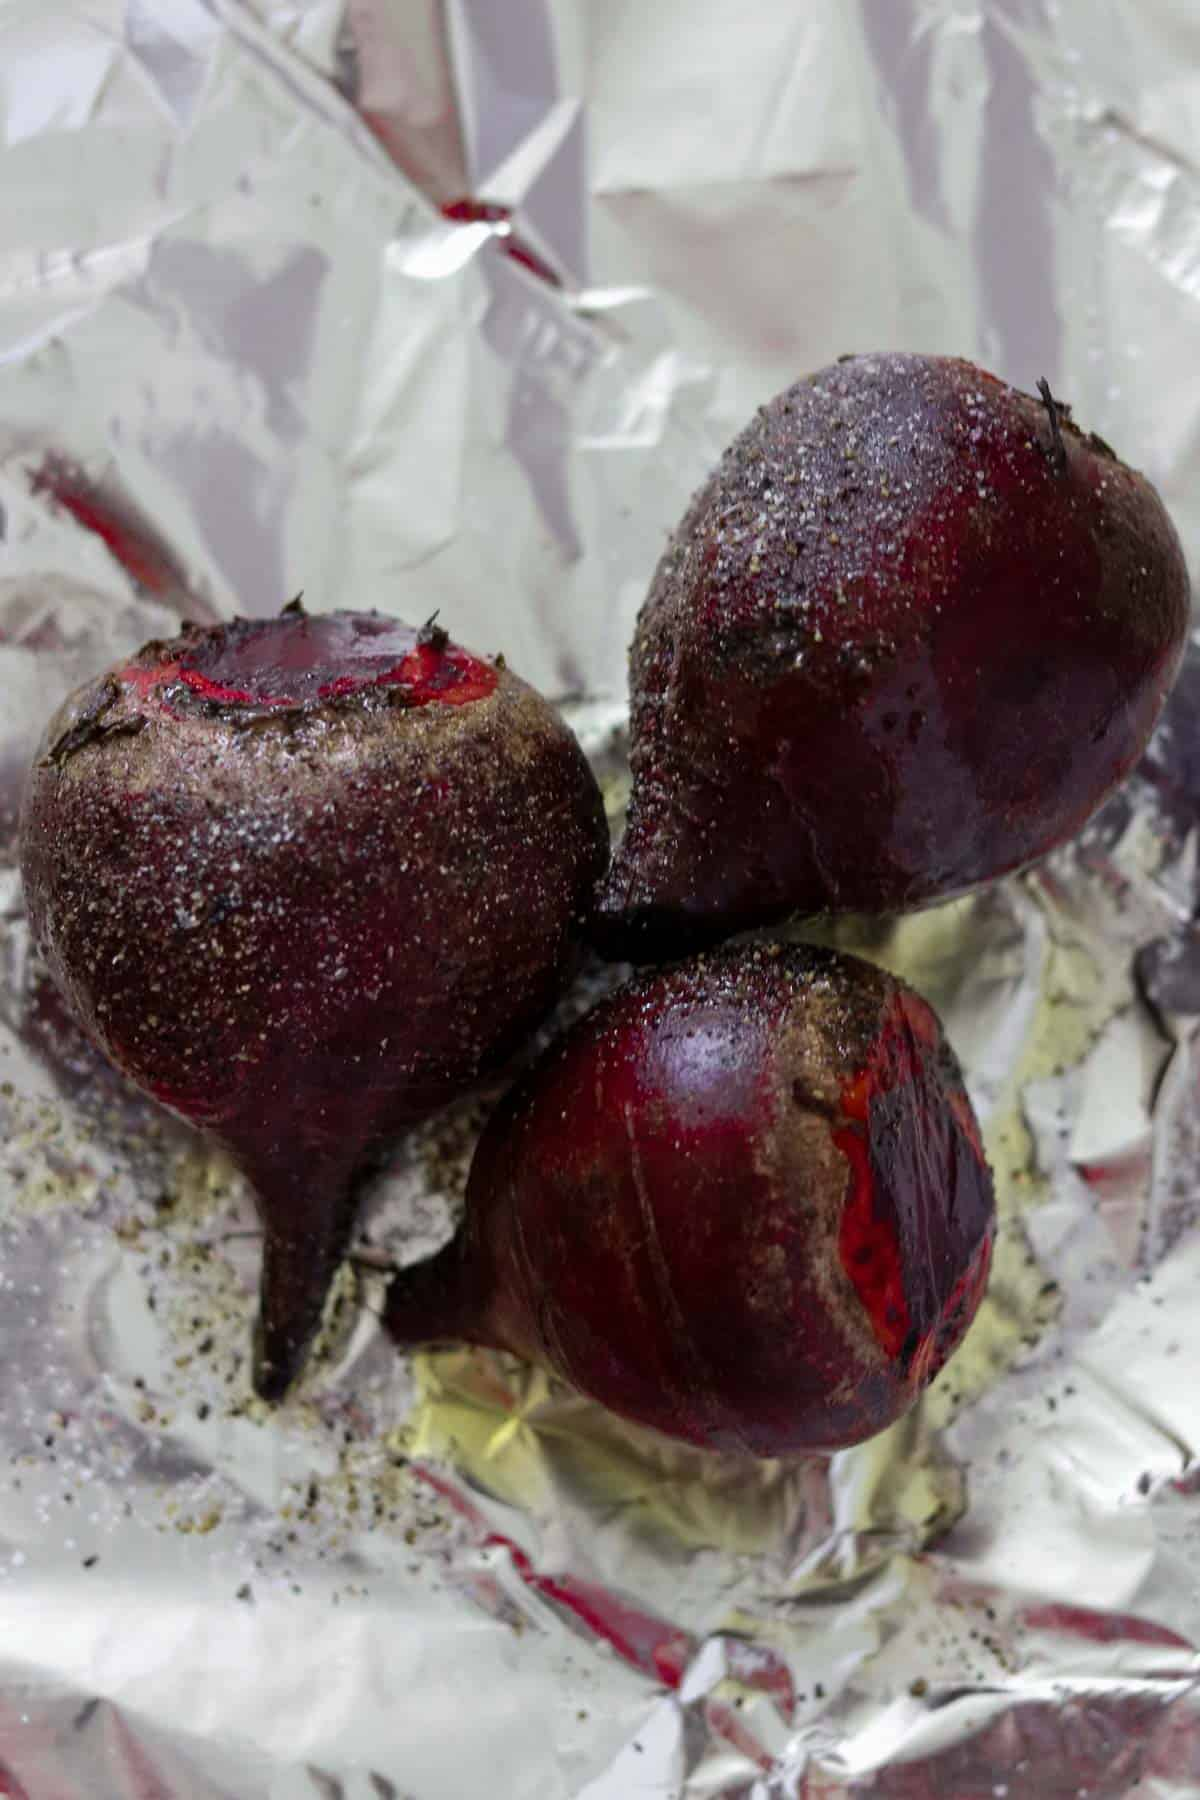 Roasted beets on a piece of foil.